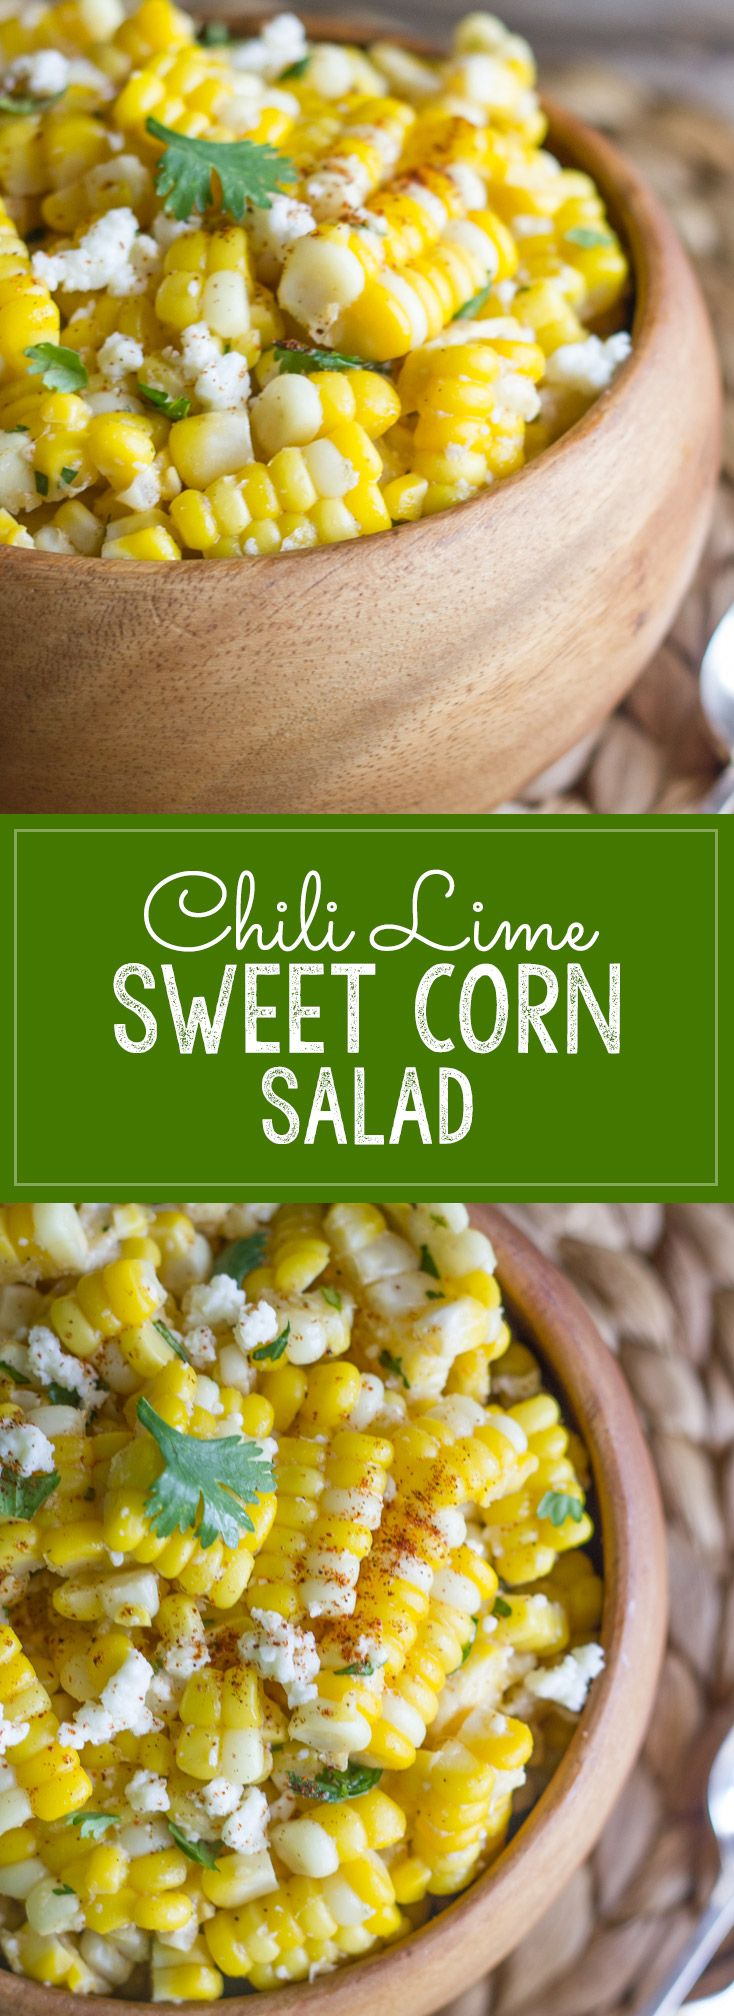 Chili Lime Sweet Corn Salad - Lovely Little Kitchen